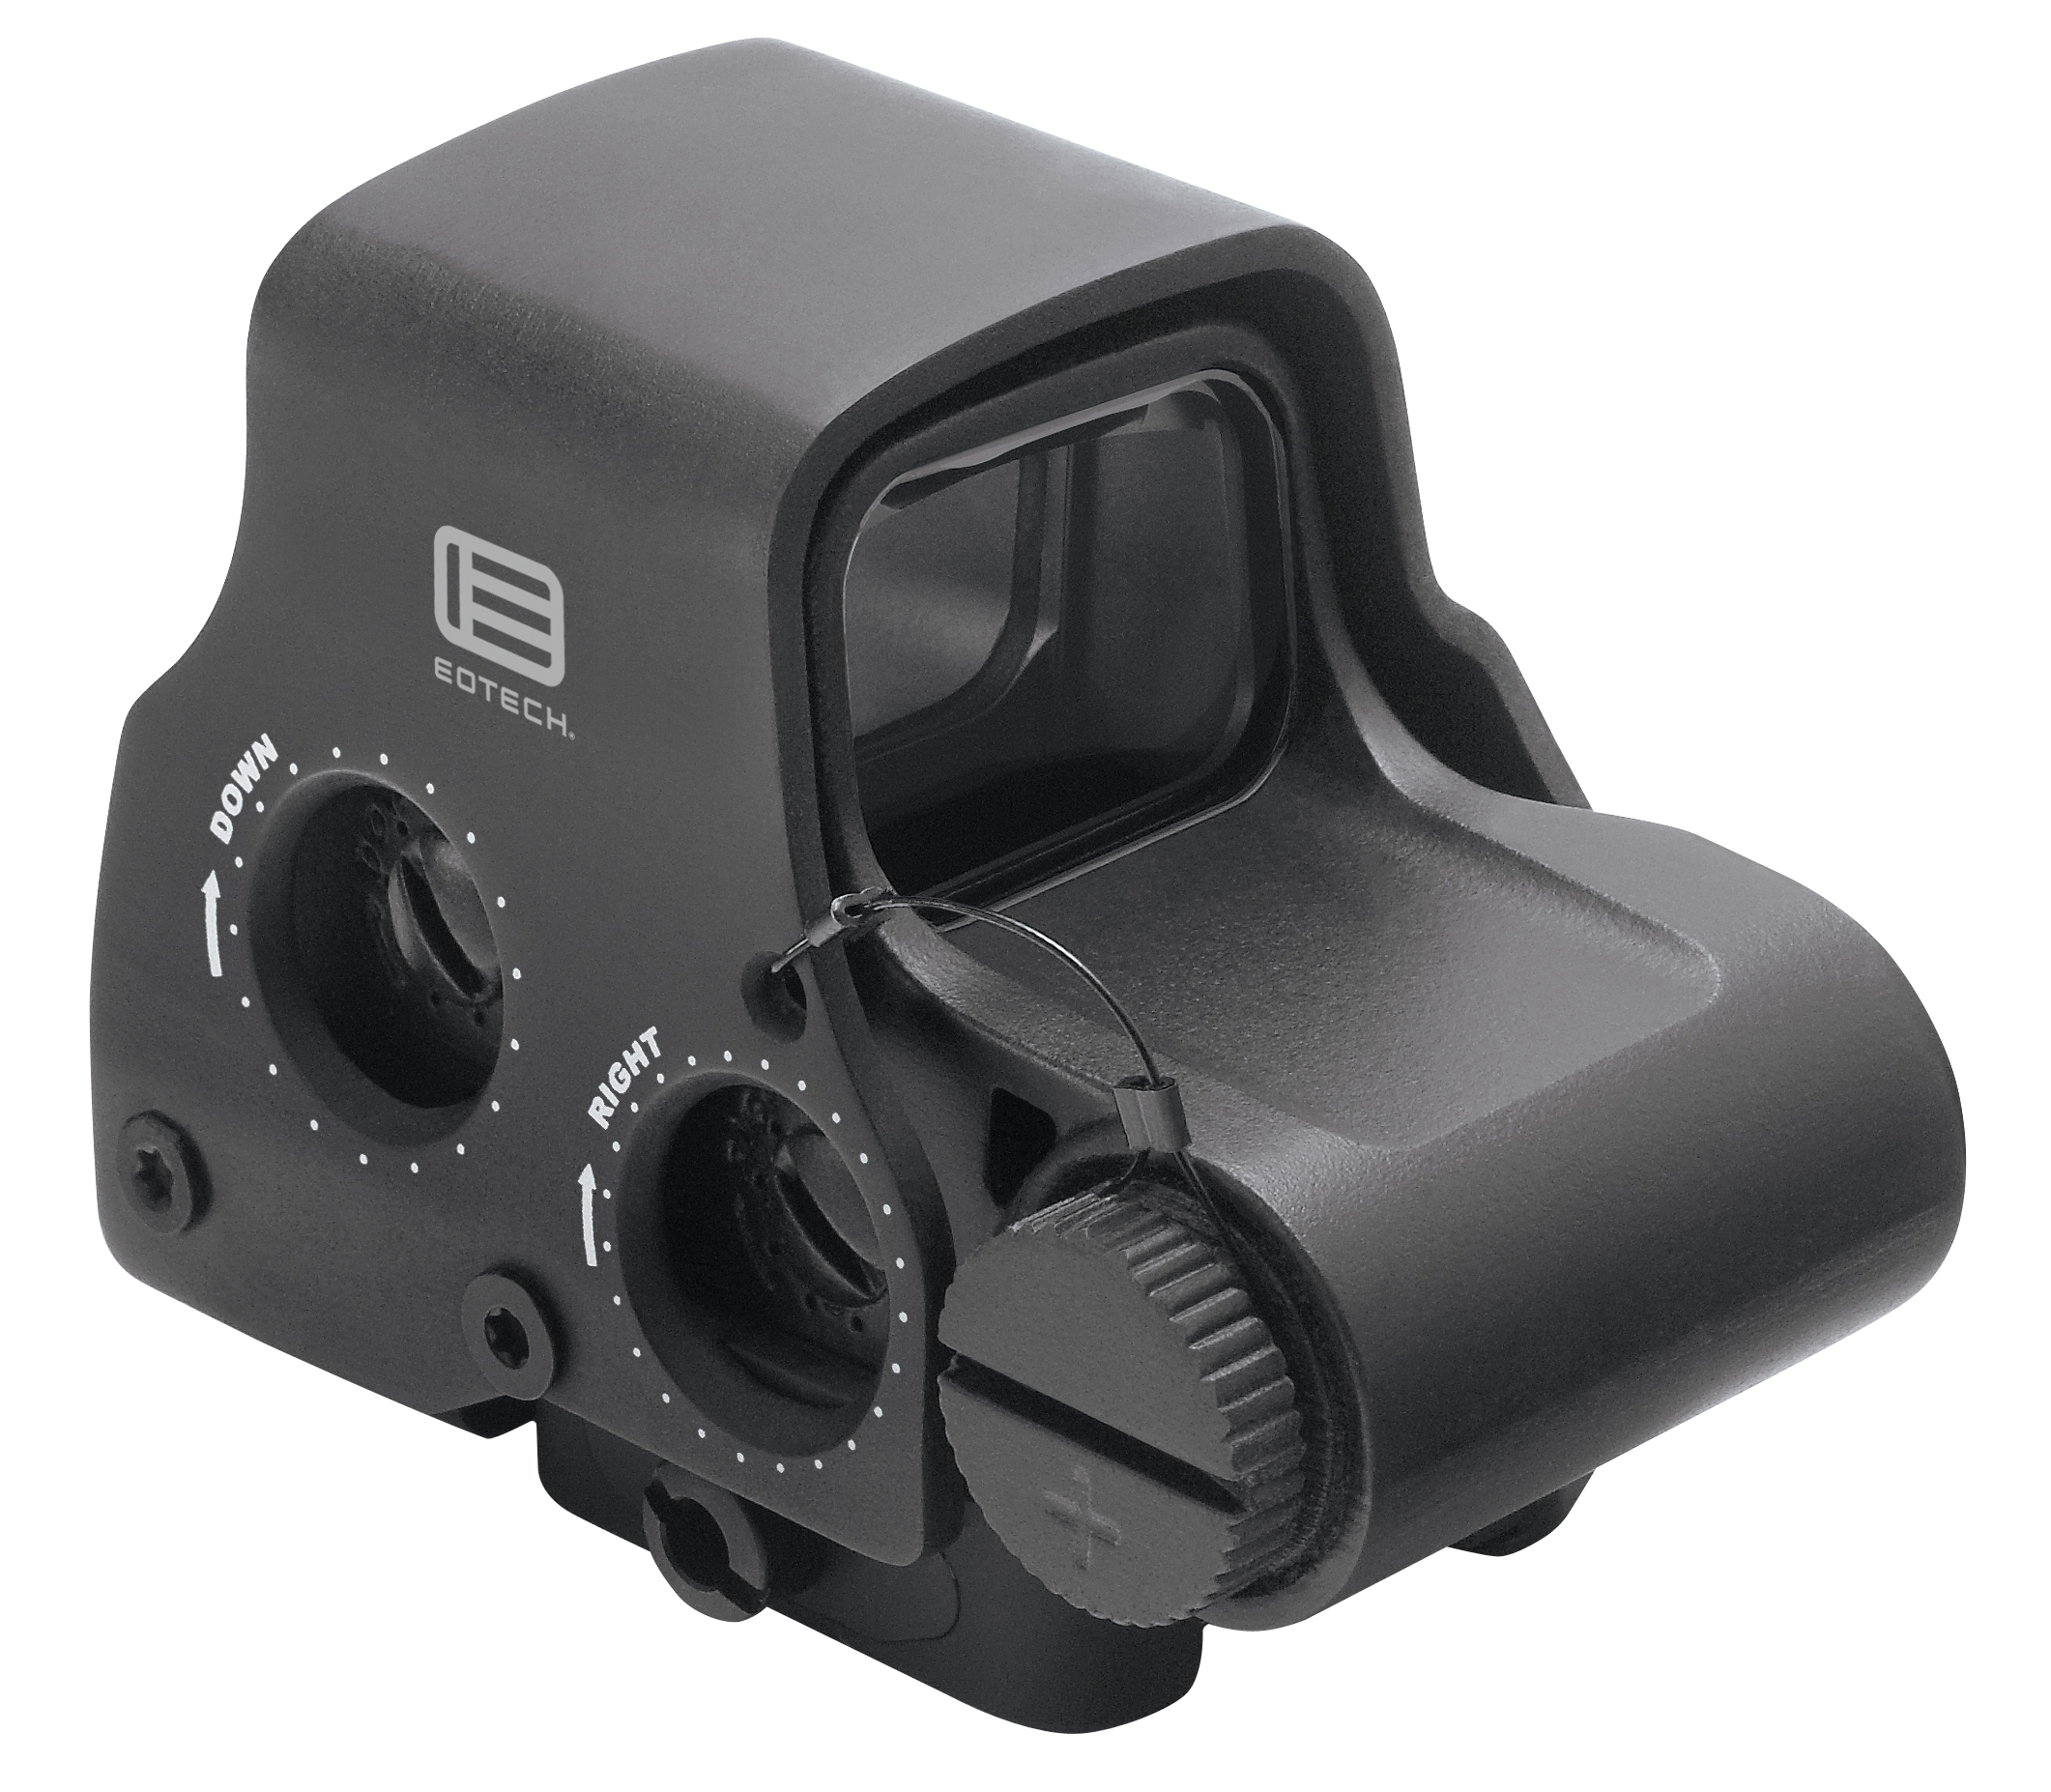 EOTech HWS Model EXPS3-2 Holographic Sight - 1x - Illum. 68 MOA Ring w/ 2 1-MOA Dots - 1 MOA Red Dot - Matte